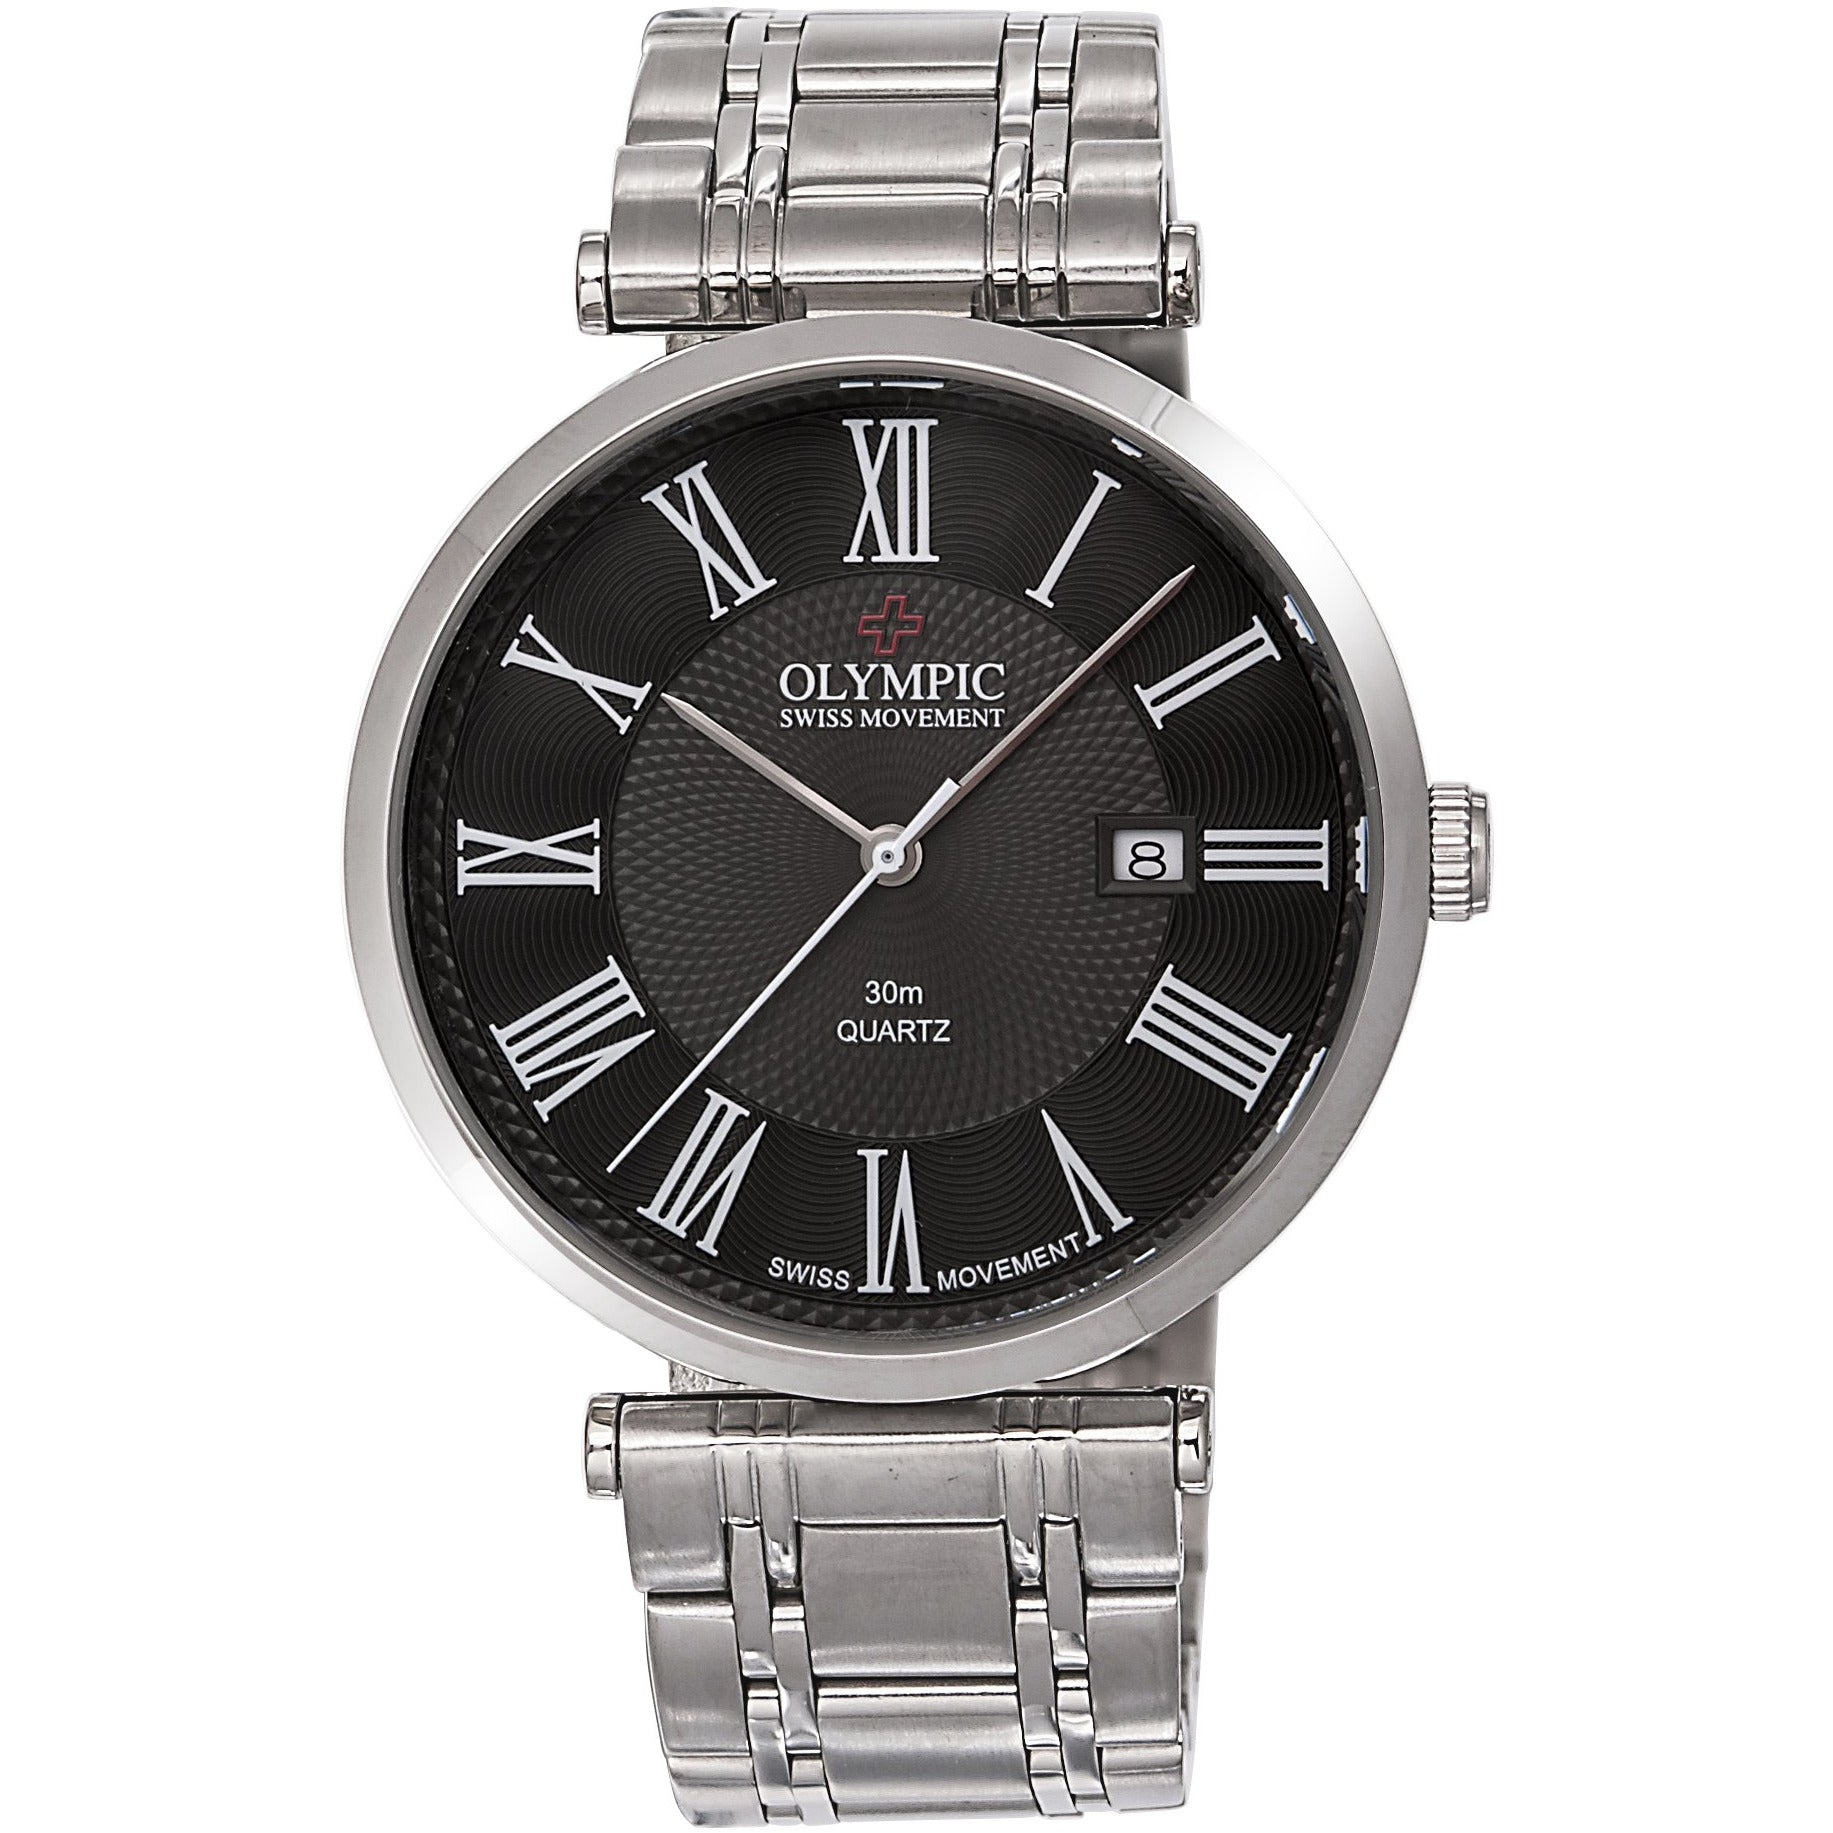 Genuine stainless steel dress watch